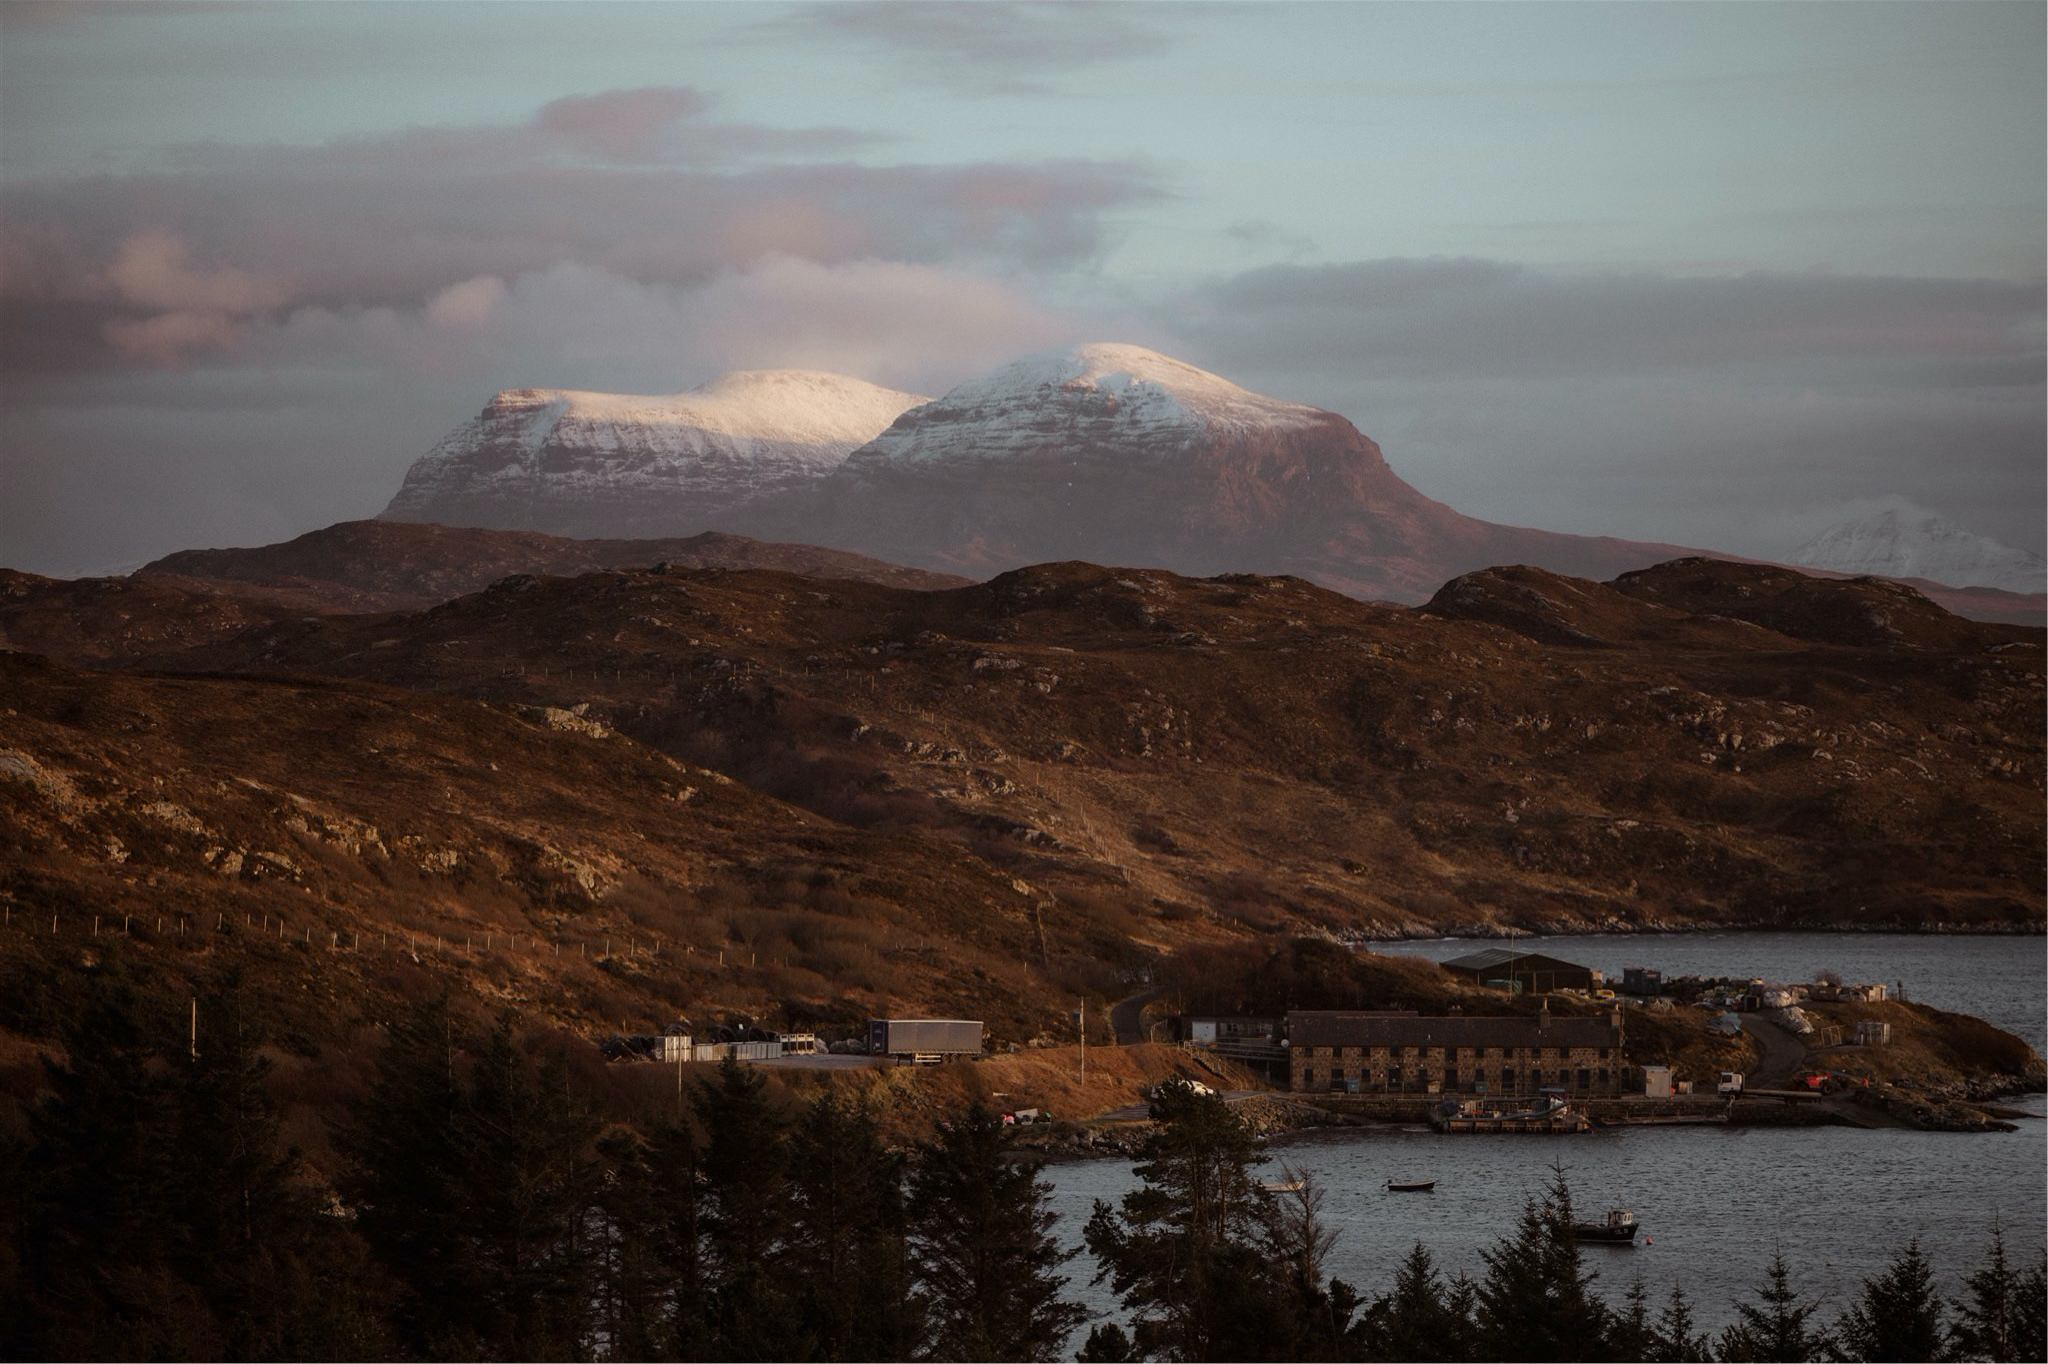 Mountains and sea views in Assynt, Scotland - on the North Coast 500